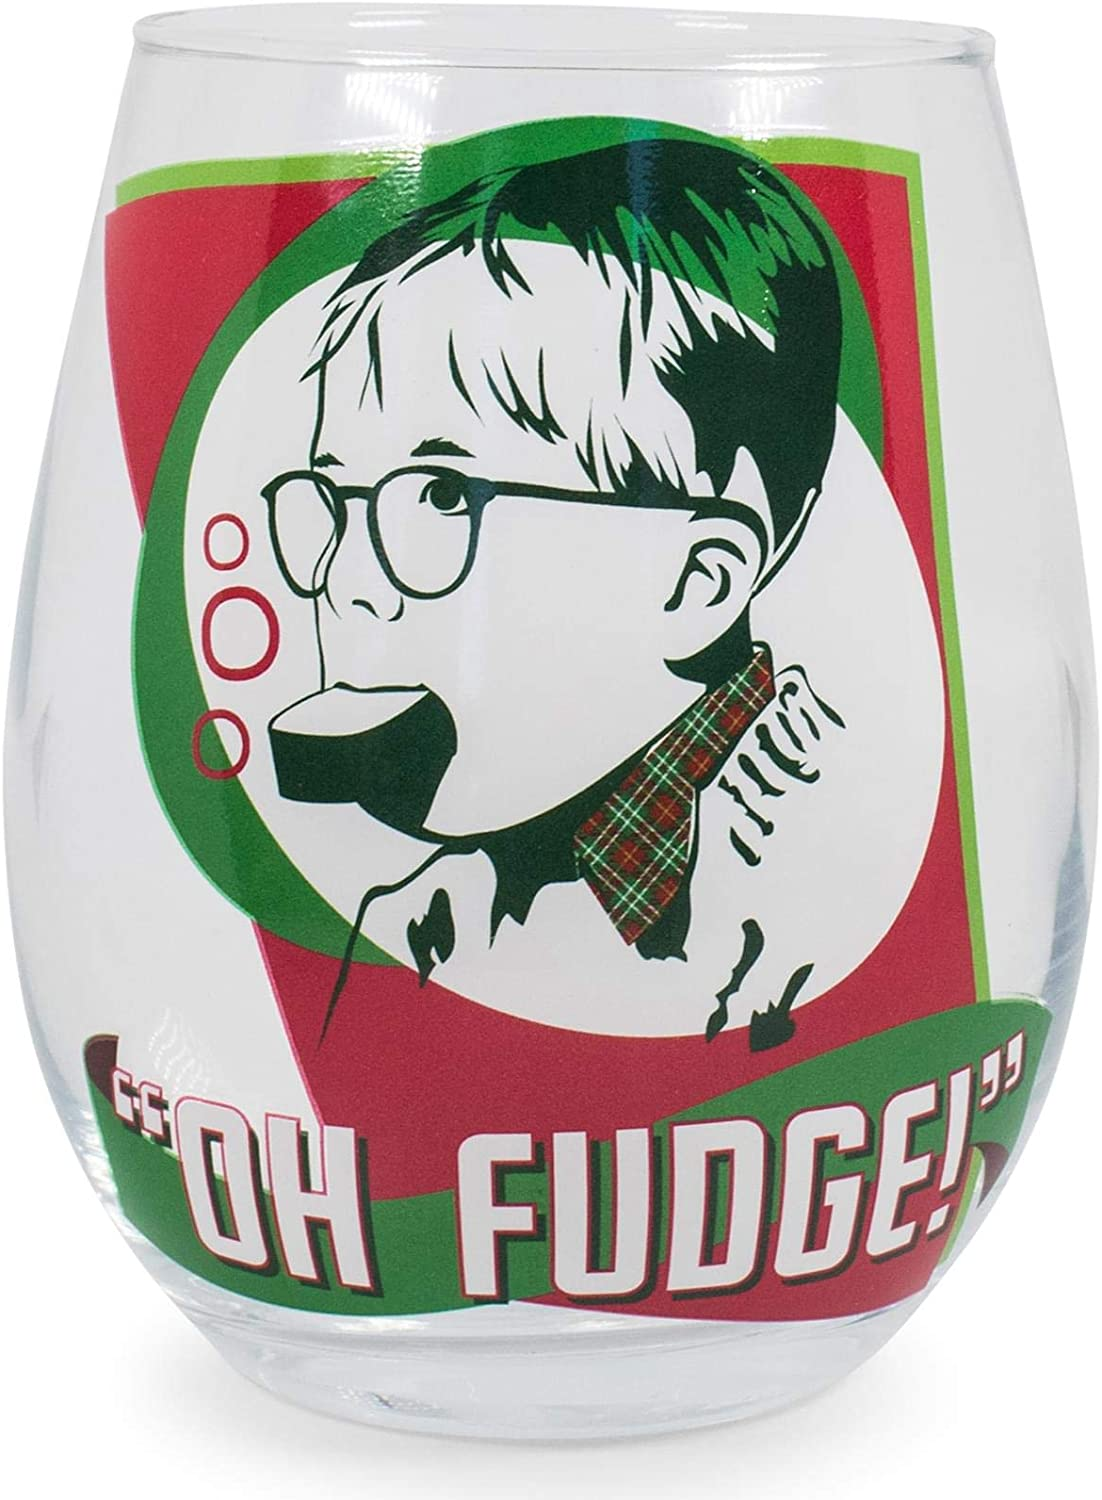 Silver Buffalo A Christmas Story Oh Fudge! Stemless Wine Glass   Funny Oversized Cup for Barware Set   Festive Drinkware for Tea, Coffee, Cocktails, Hot and Cold Beverages   Holds 20 Ounces